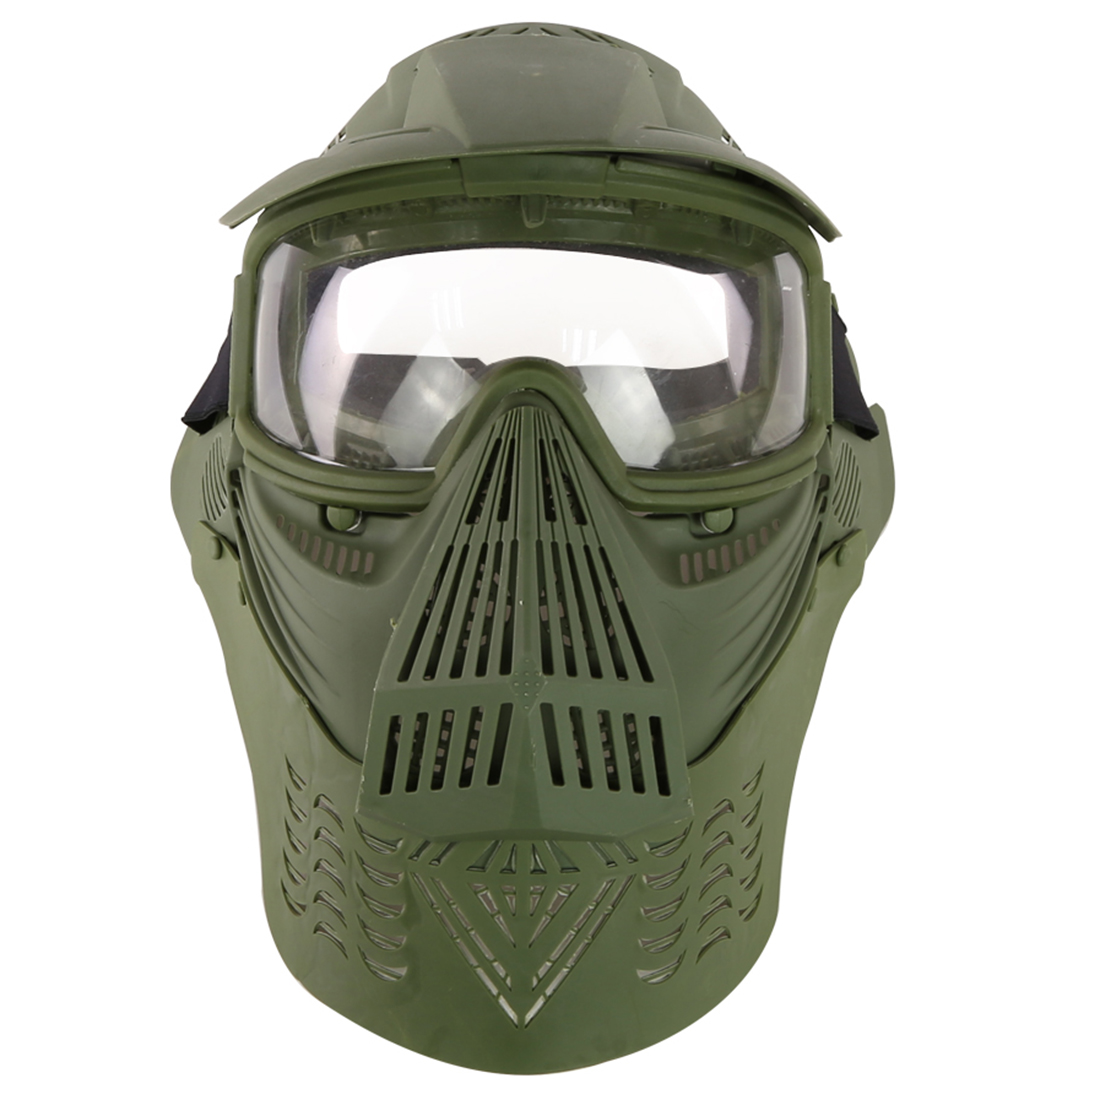 Sports & Entertainment Paintball Accessories Trustful Simple Style Tactical Paintball Mask Soft Bullet Dart Protective Mirror Face Mask For Nerf Camouflage Color